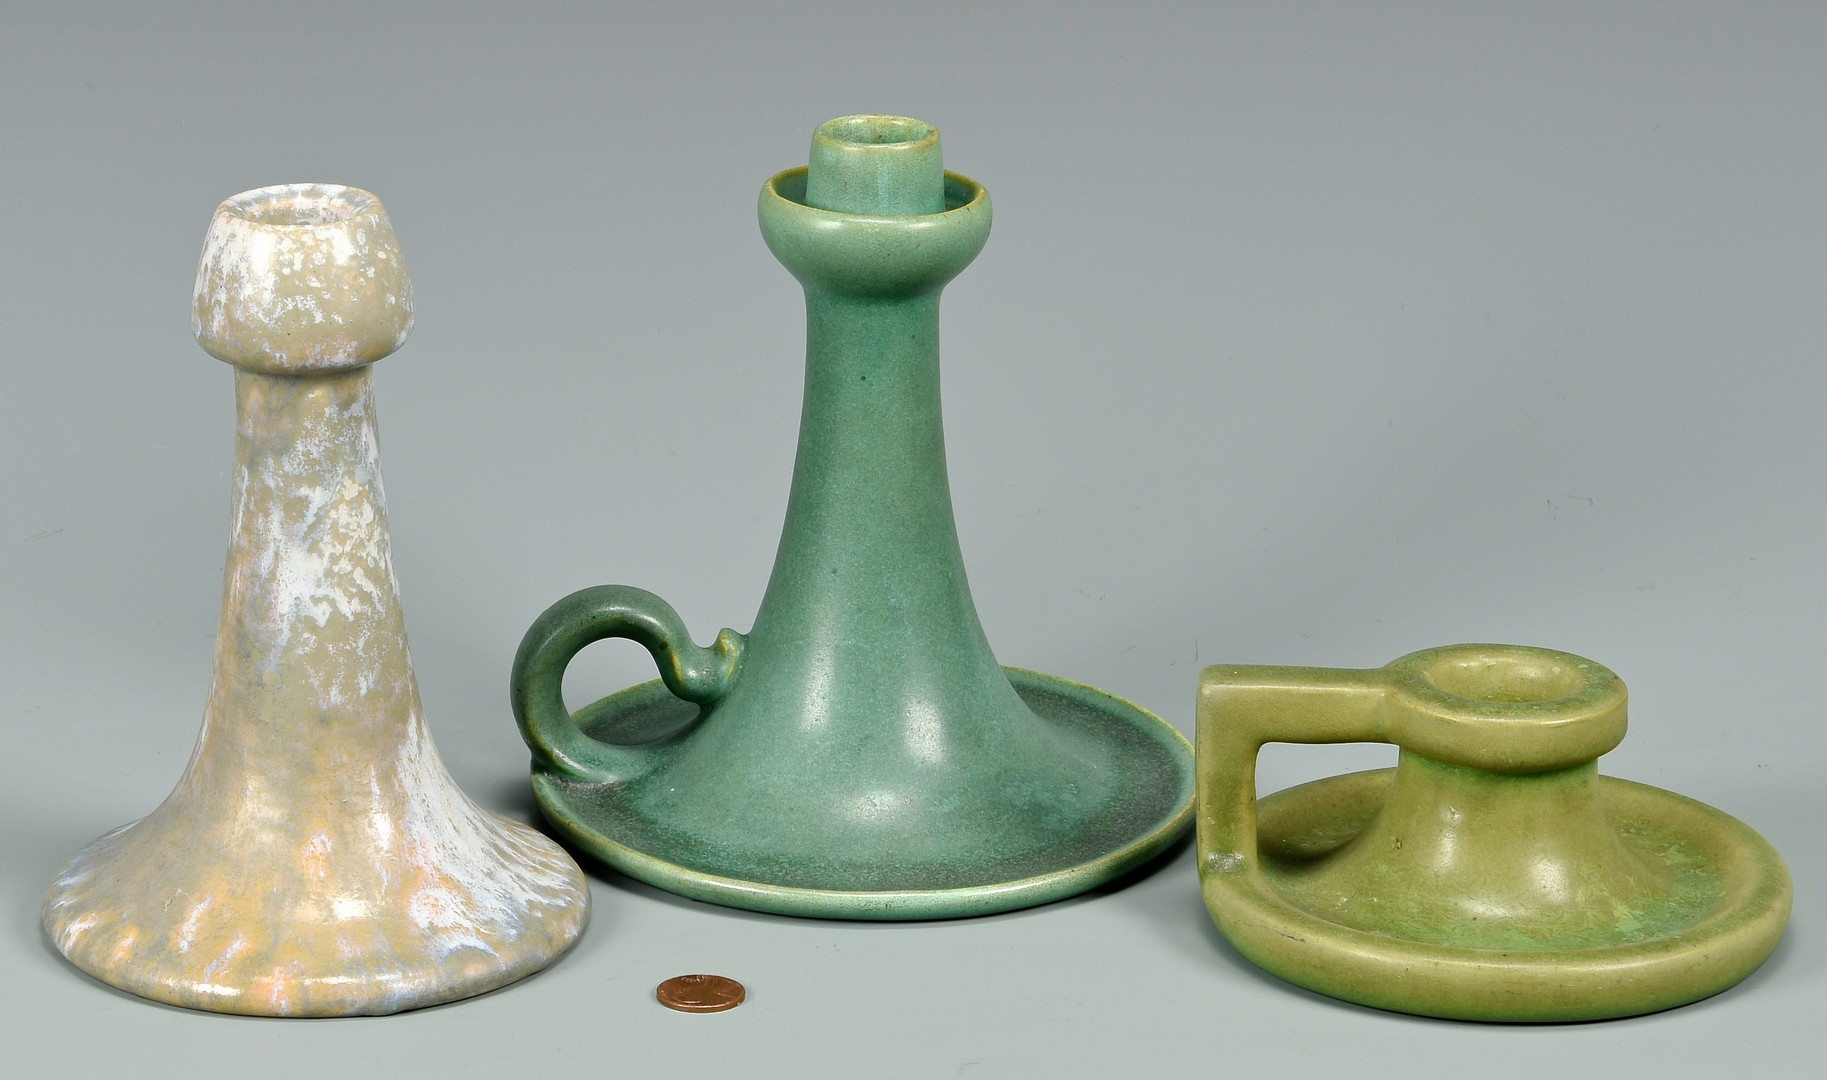 Lot 461: Teco Art Pottery Candlesticks plus 1 other